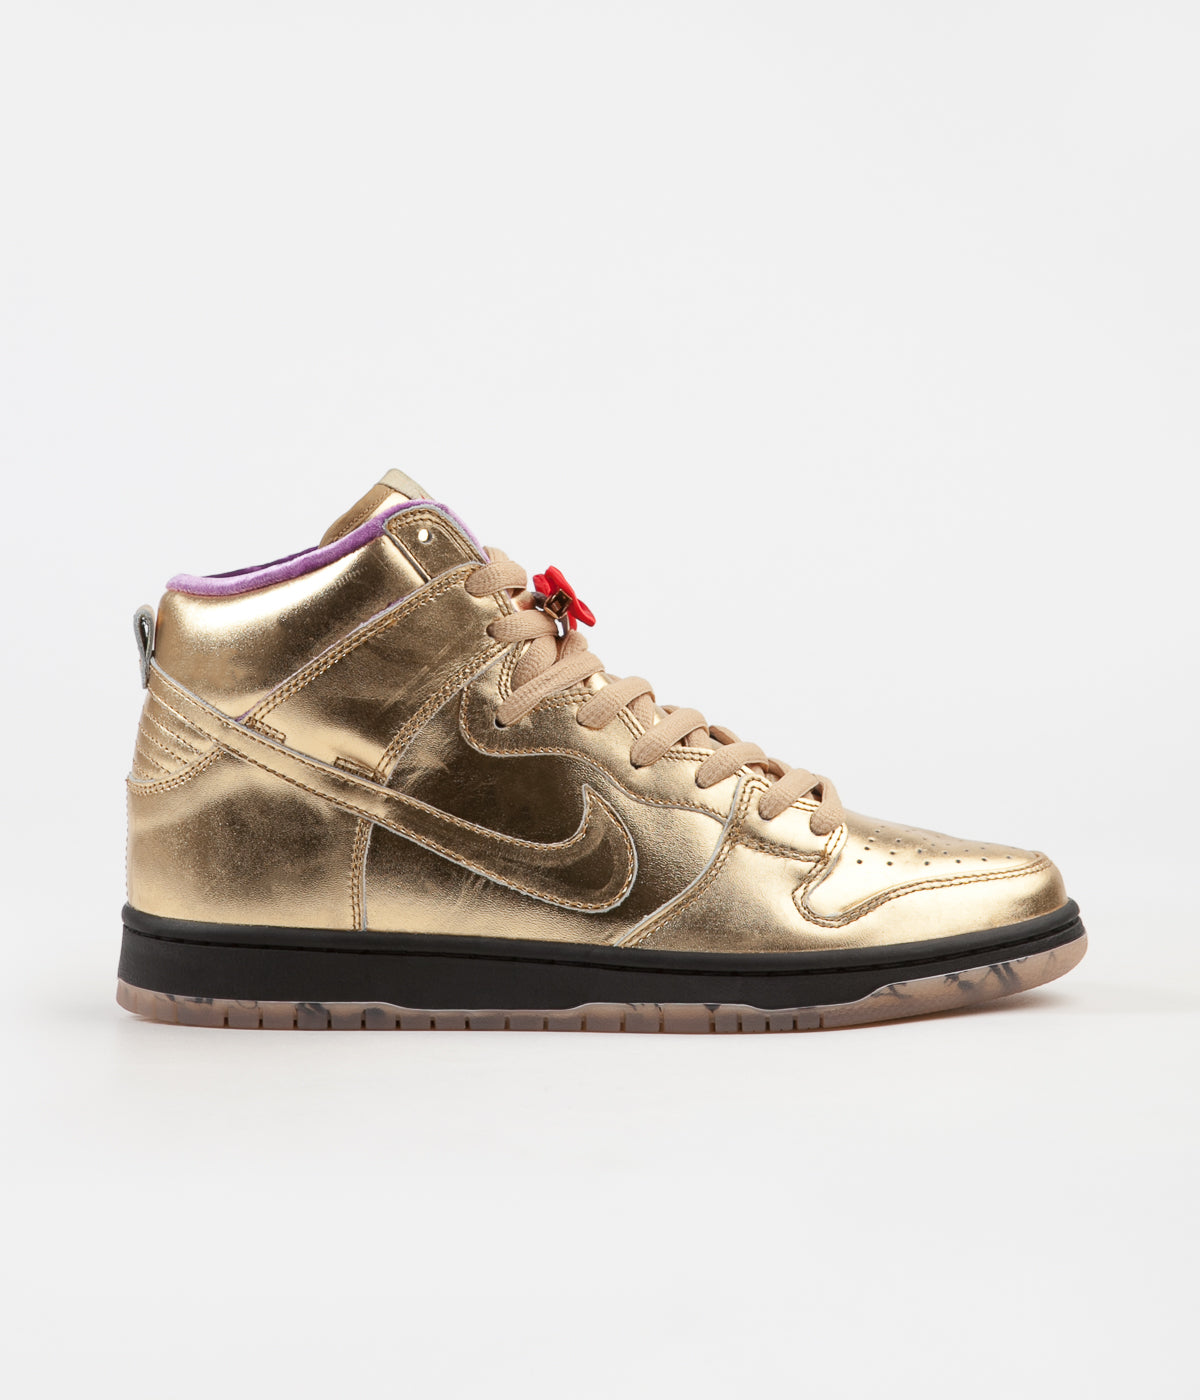 Nike SB x Humidity 'Trumpet' Dunk High QS Shoes - Metallic Gold / Metallic Gold - Black